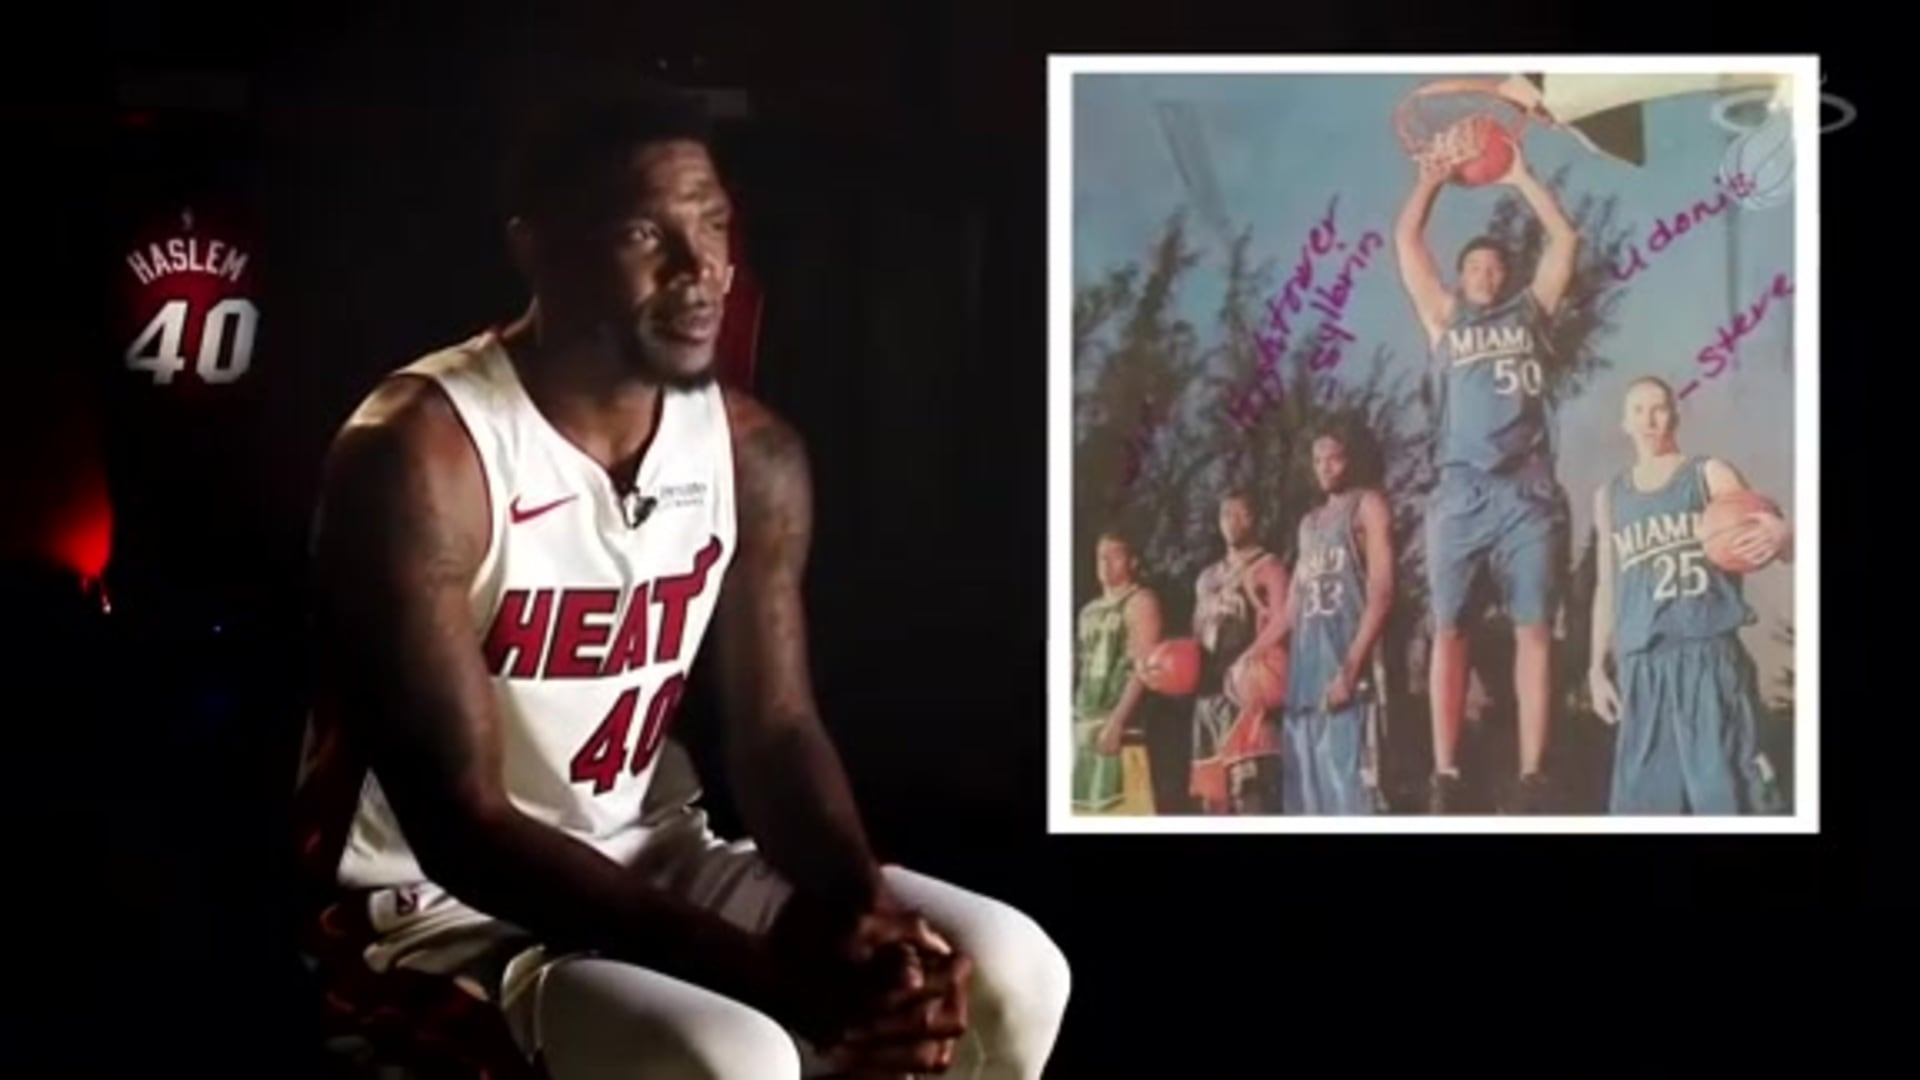 My Number - Haslem